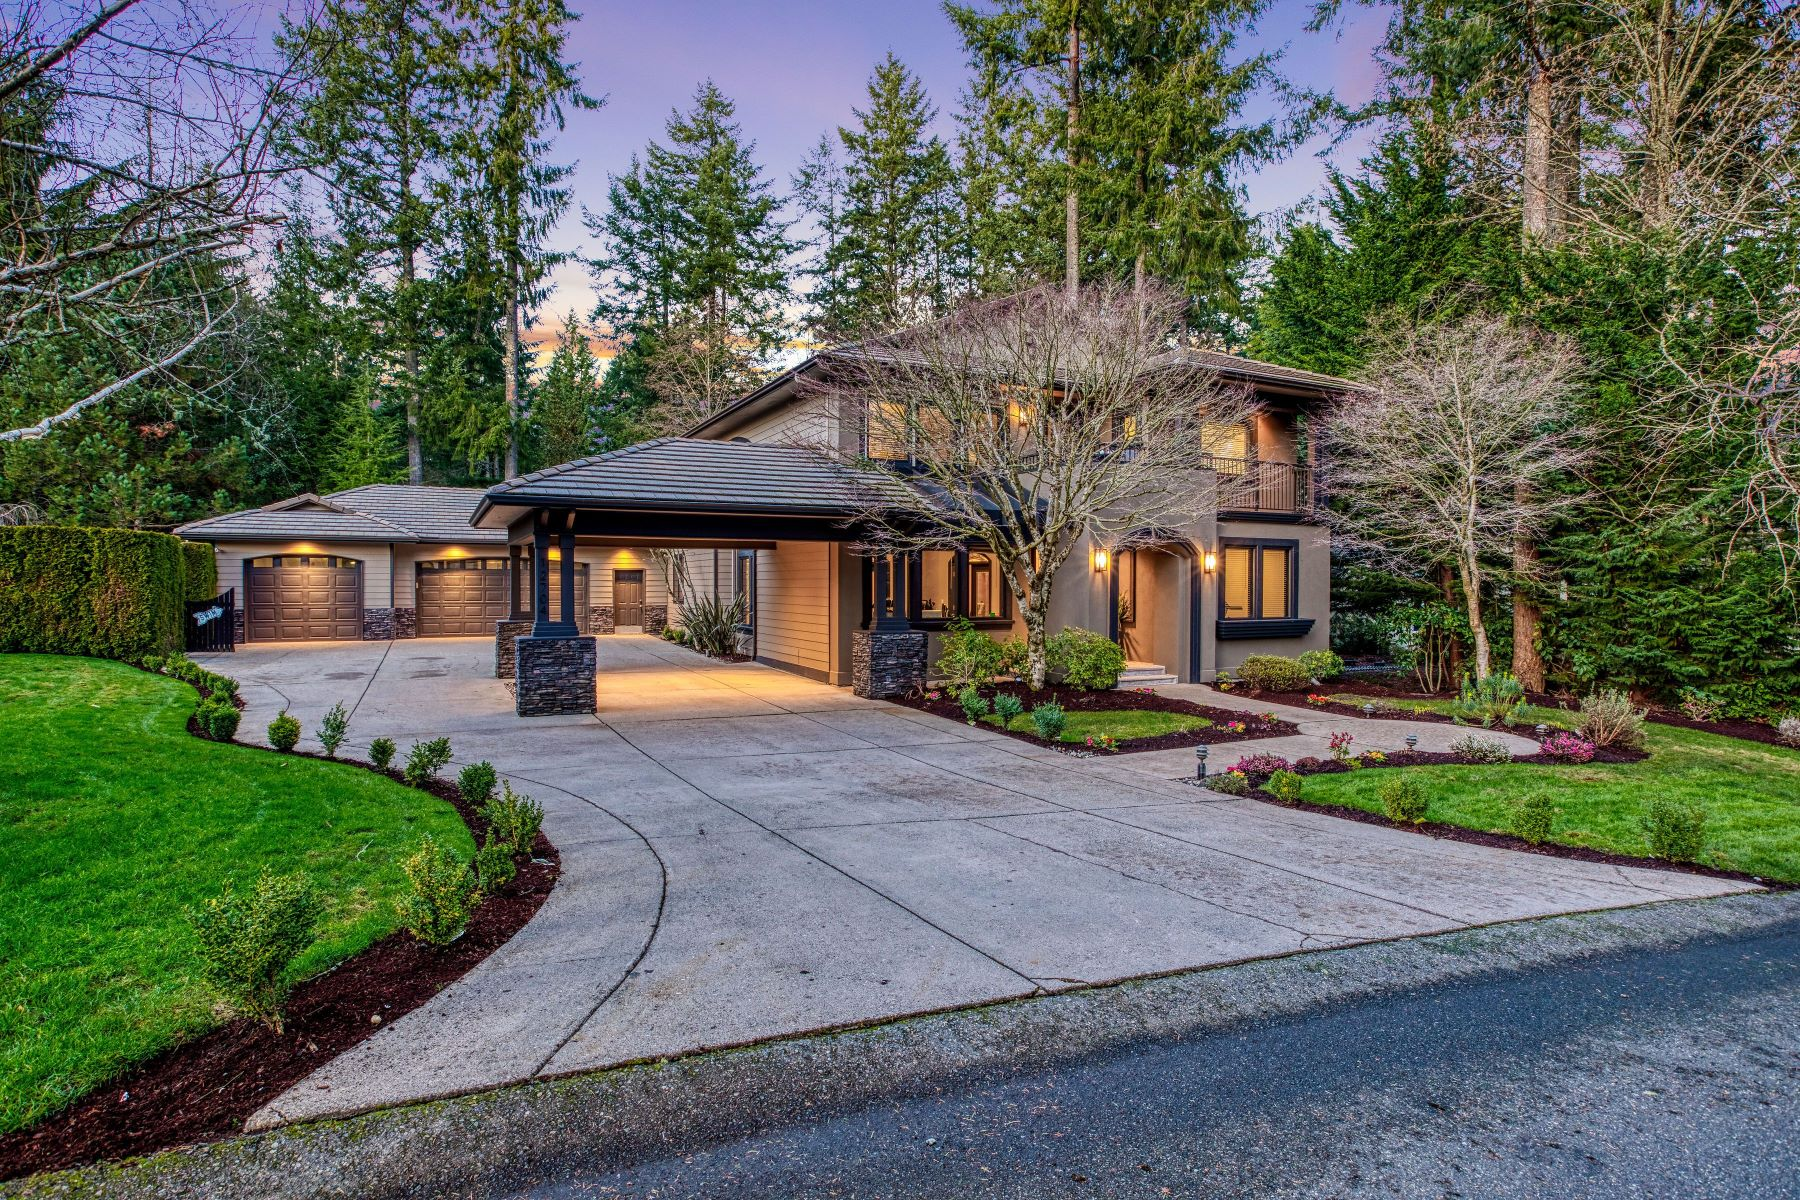 Single Family Homes for Sale at 12704 Tanager Dr NW, Gig Harbor, WA 98332 12704 Tanager Dr NW Gig Harbor, Washington 98332 United States